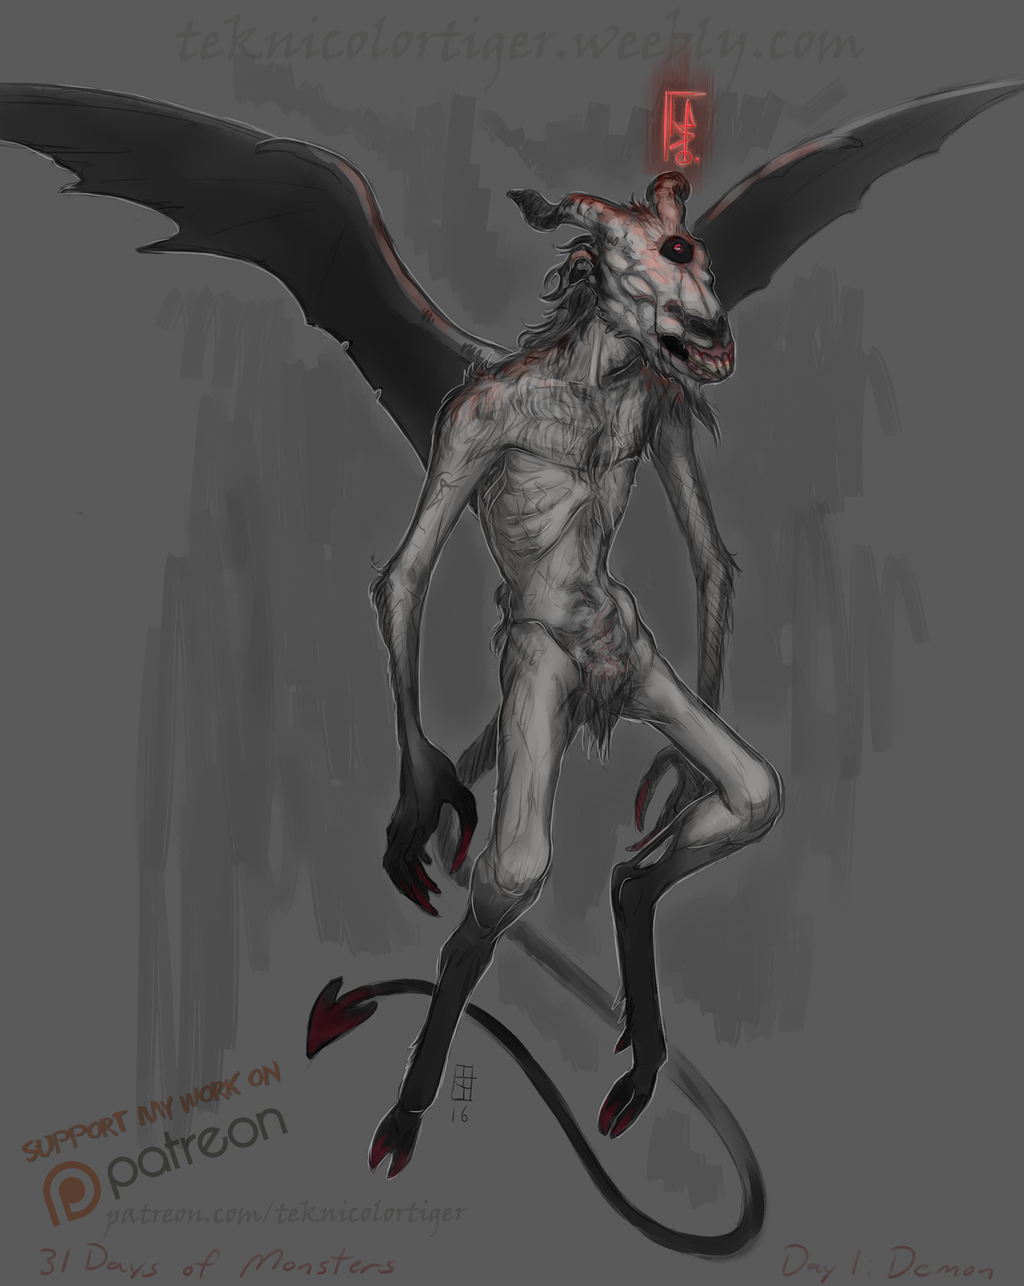 31 Days of Monsters: Ualac the Demon